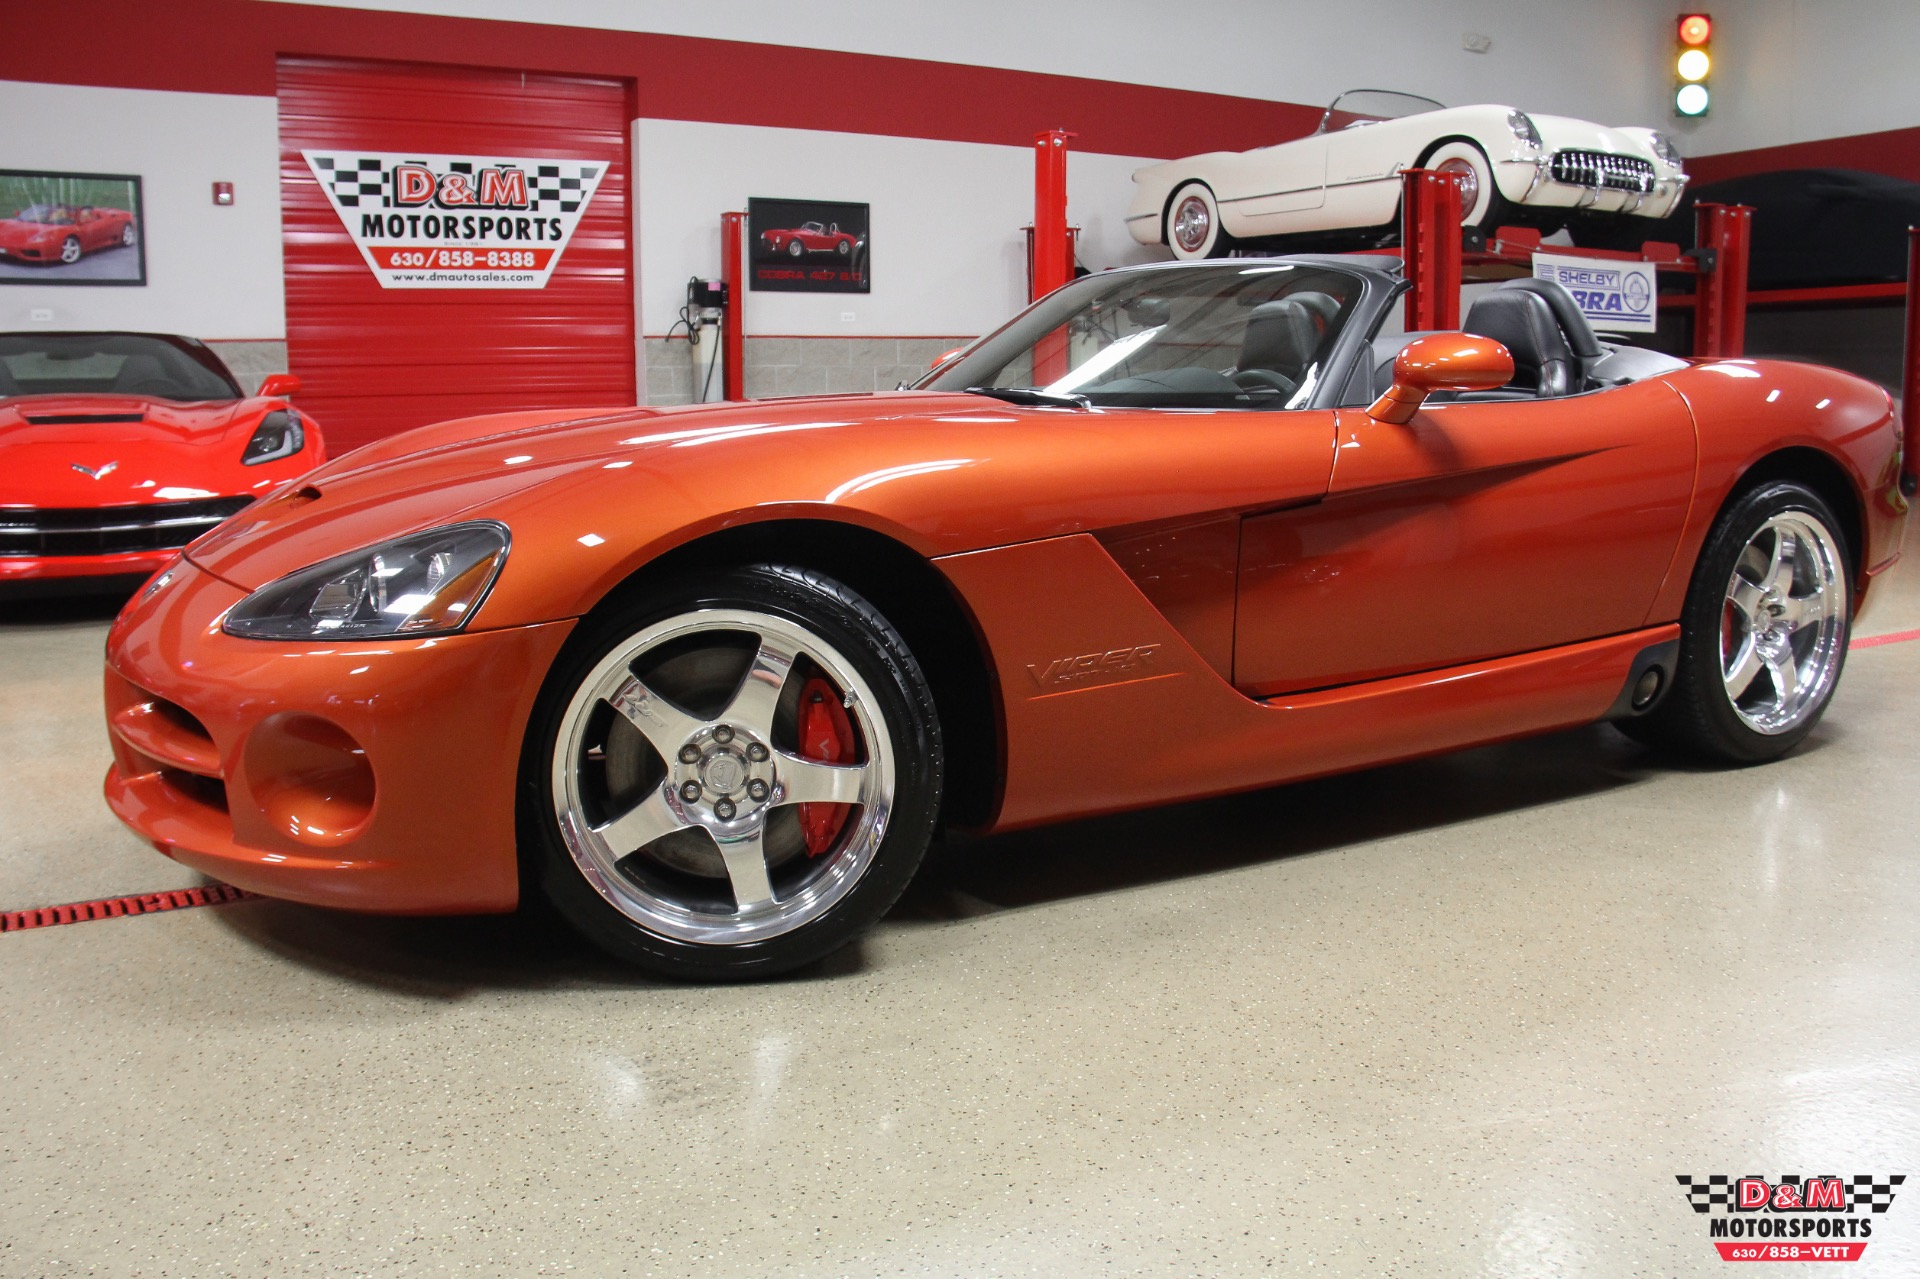 2005 Dodge Viper SRT 10 Convertible Stock M6300 for sale near Glen